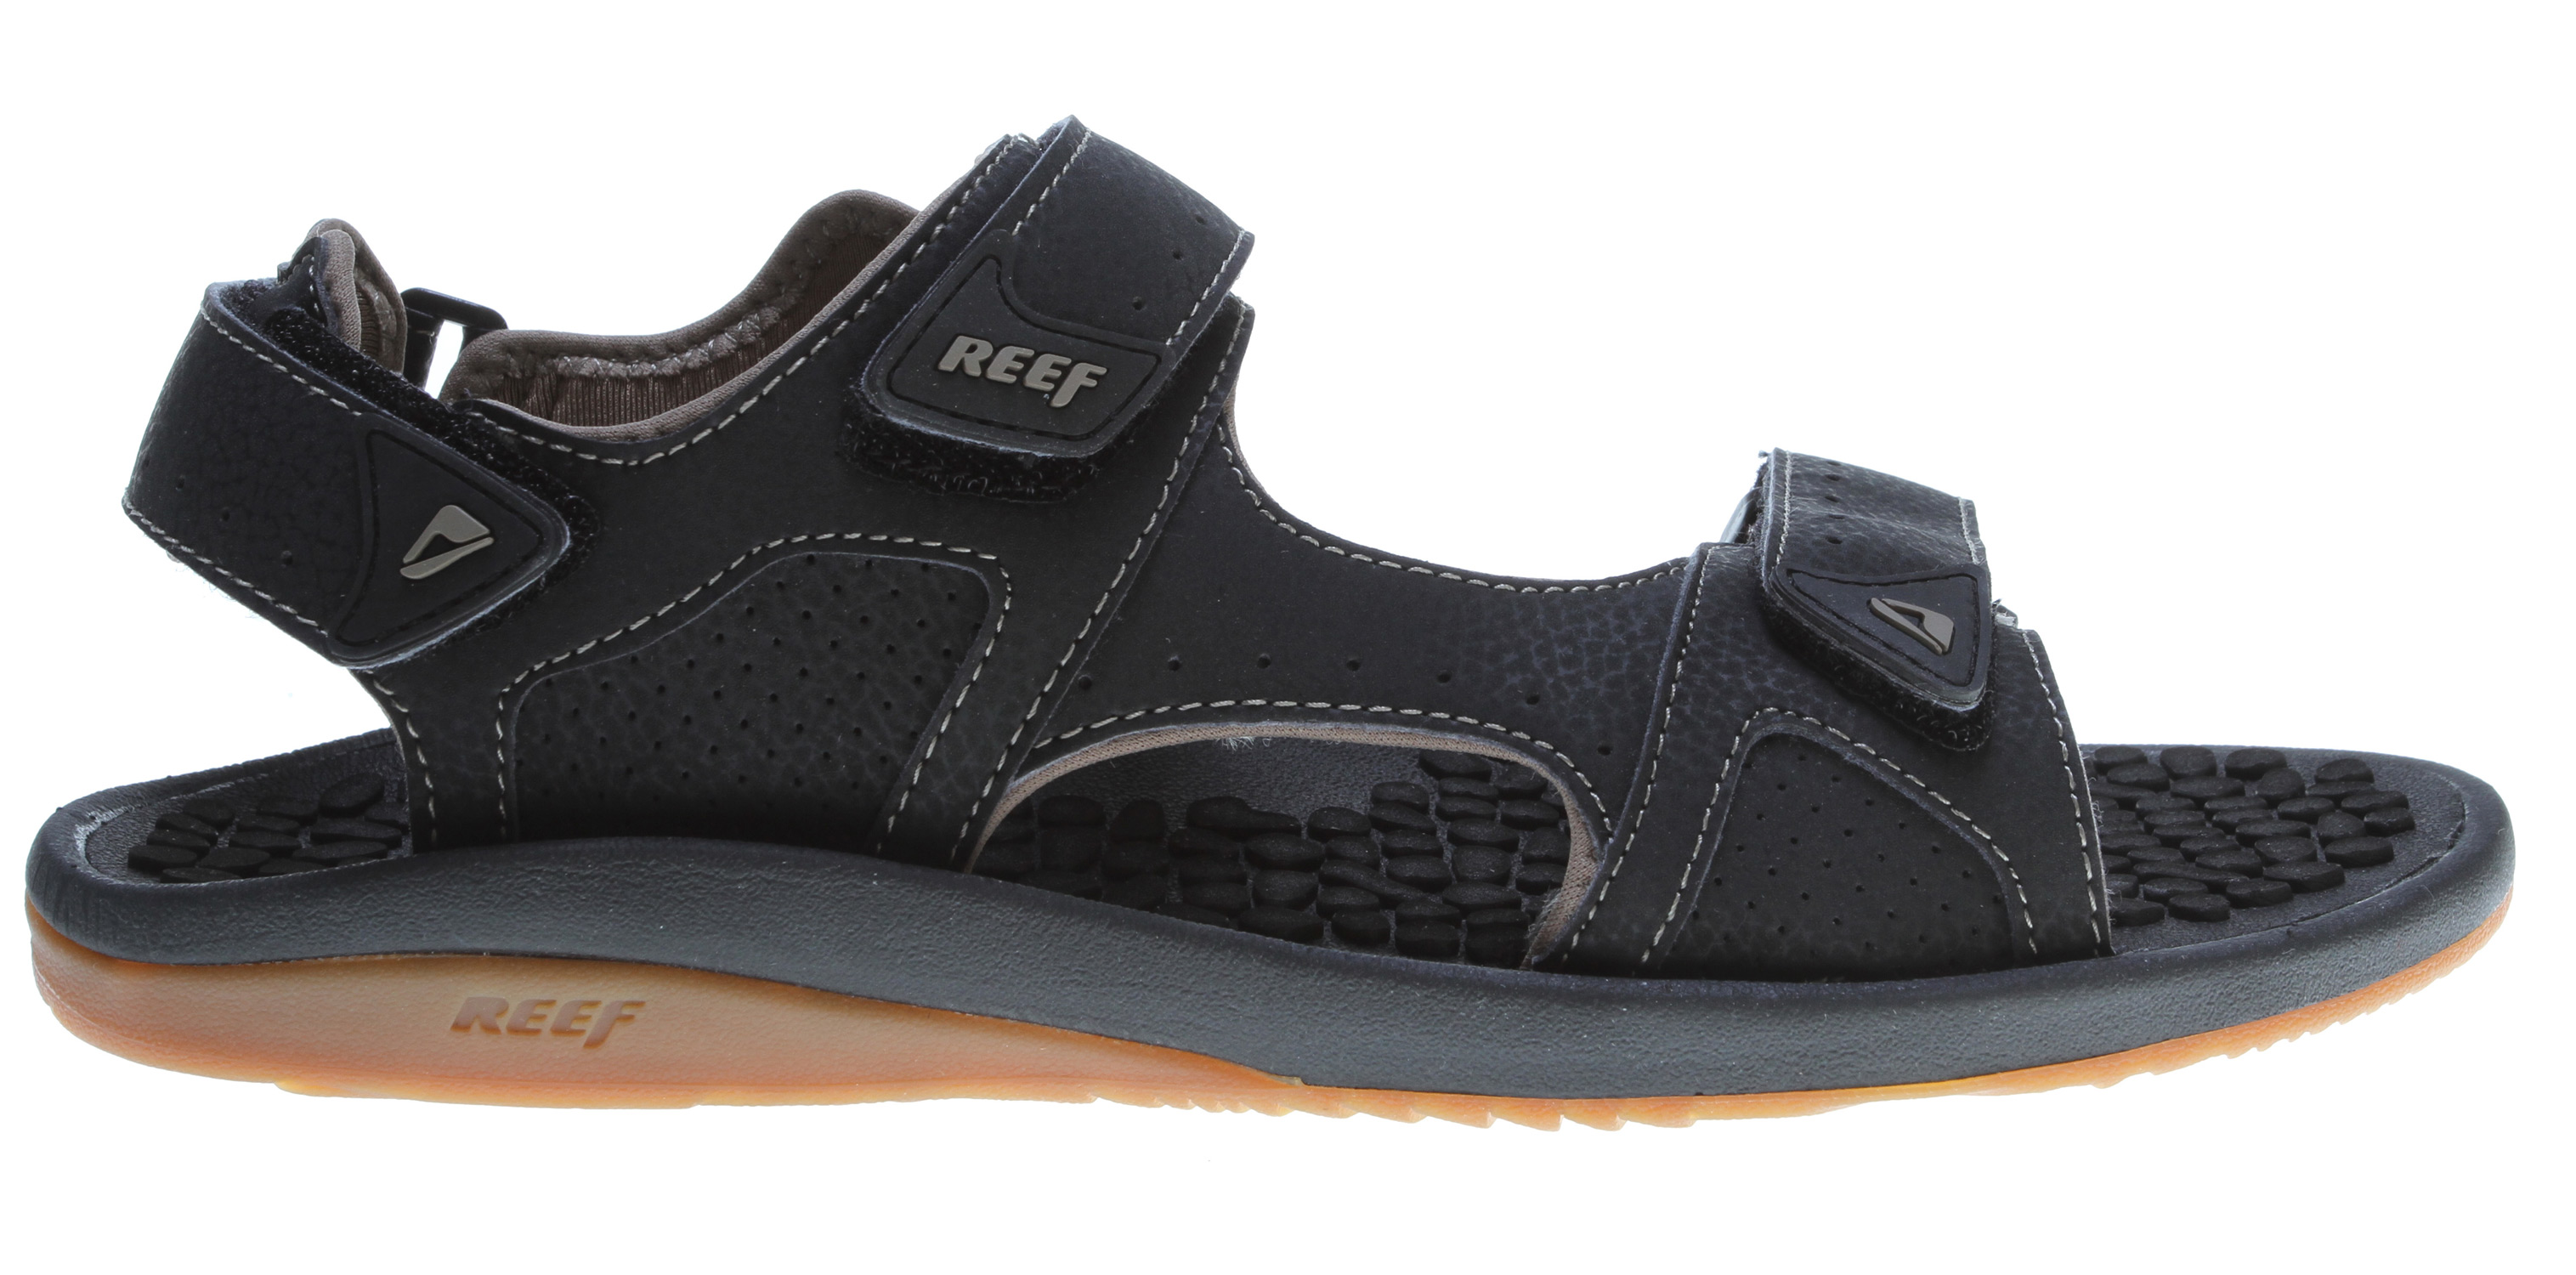 Surf Key Features of the Reef Olas Cage SL Sandals: water friendly leather adjustable cage upper with bridge support feature Quick dry lining Heavy texture thermo-sliced textured eva footbed Deep contoured compression molded eva midsole Reef supreme design outsole made of 25% recycled rubber Supreme box packaging - $65.00